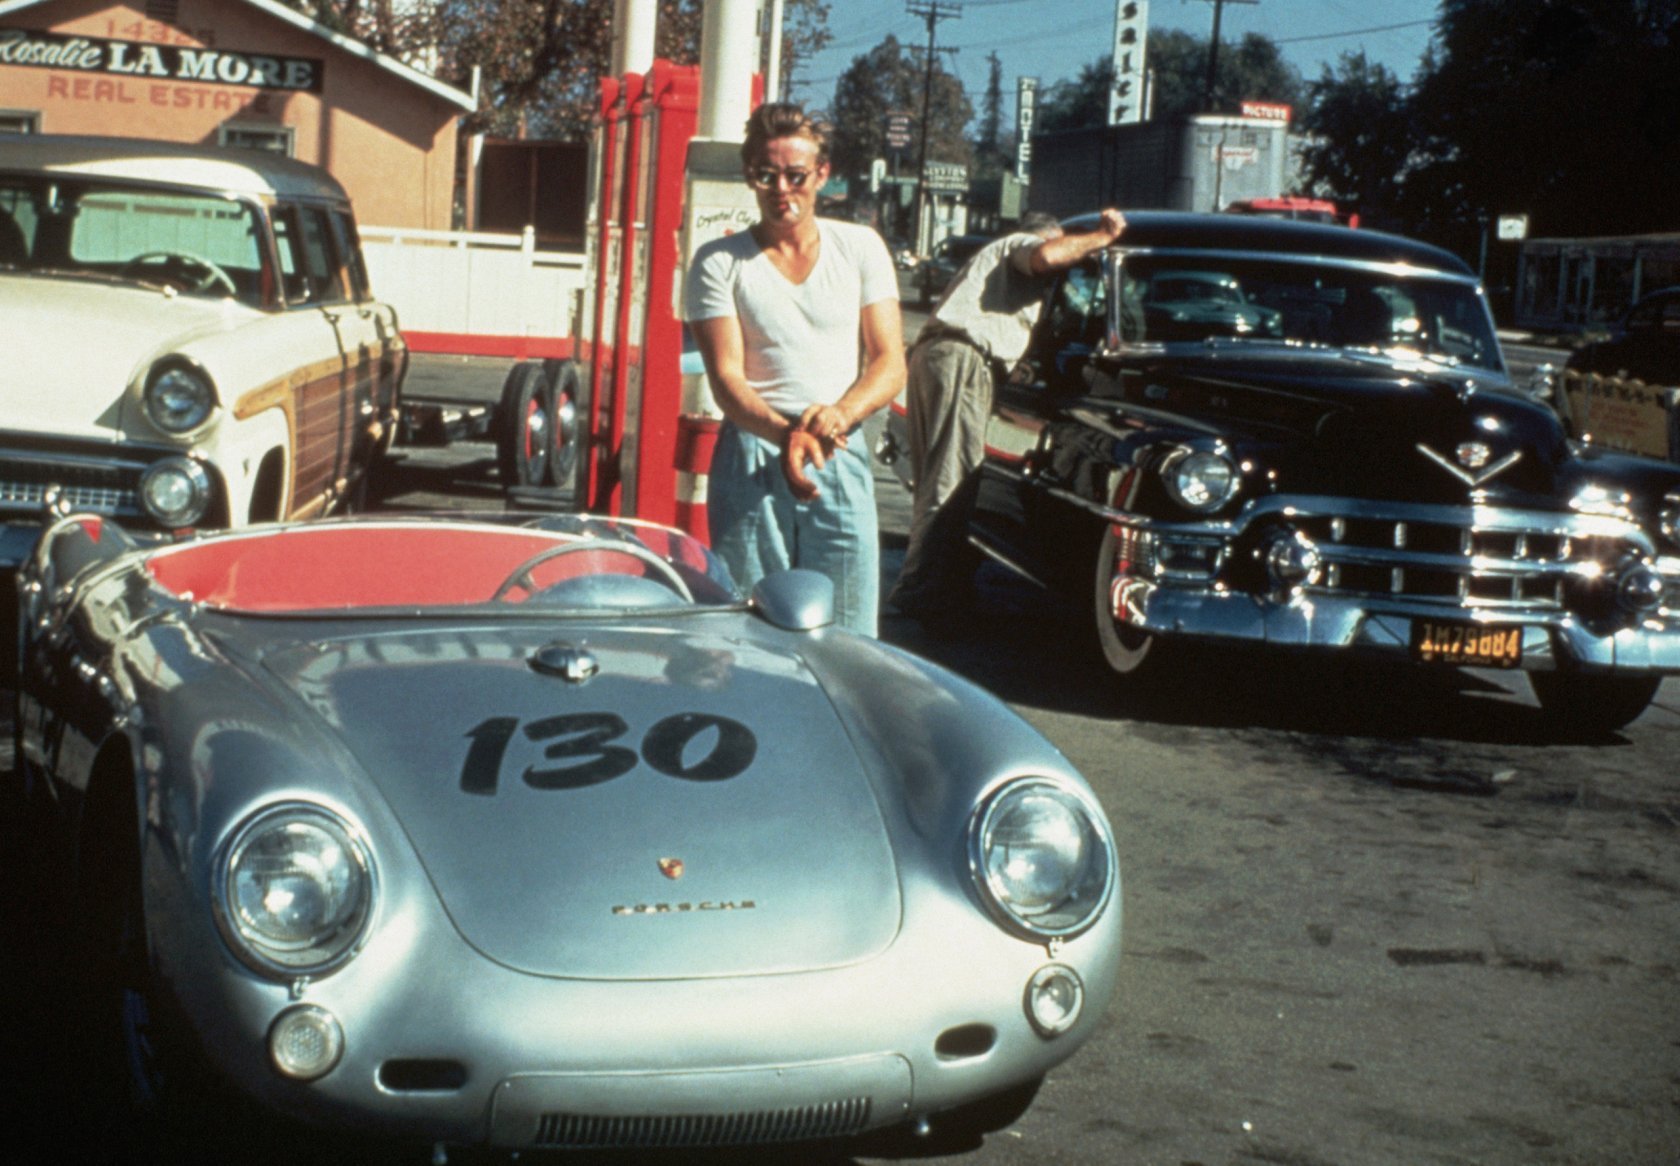 30 Sep 1955, California, USA --- James Dean at a gas station with his silver Porsche 550 Spyder he named Little Bastard, just hours before his fatal crash.